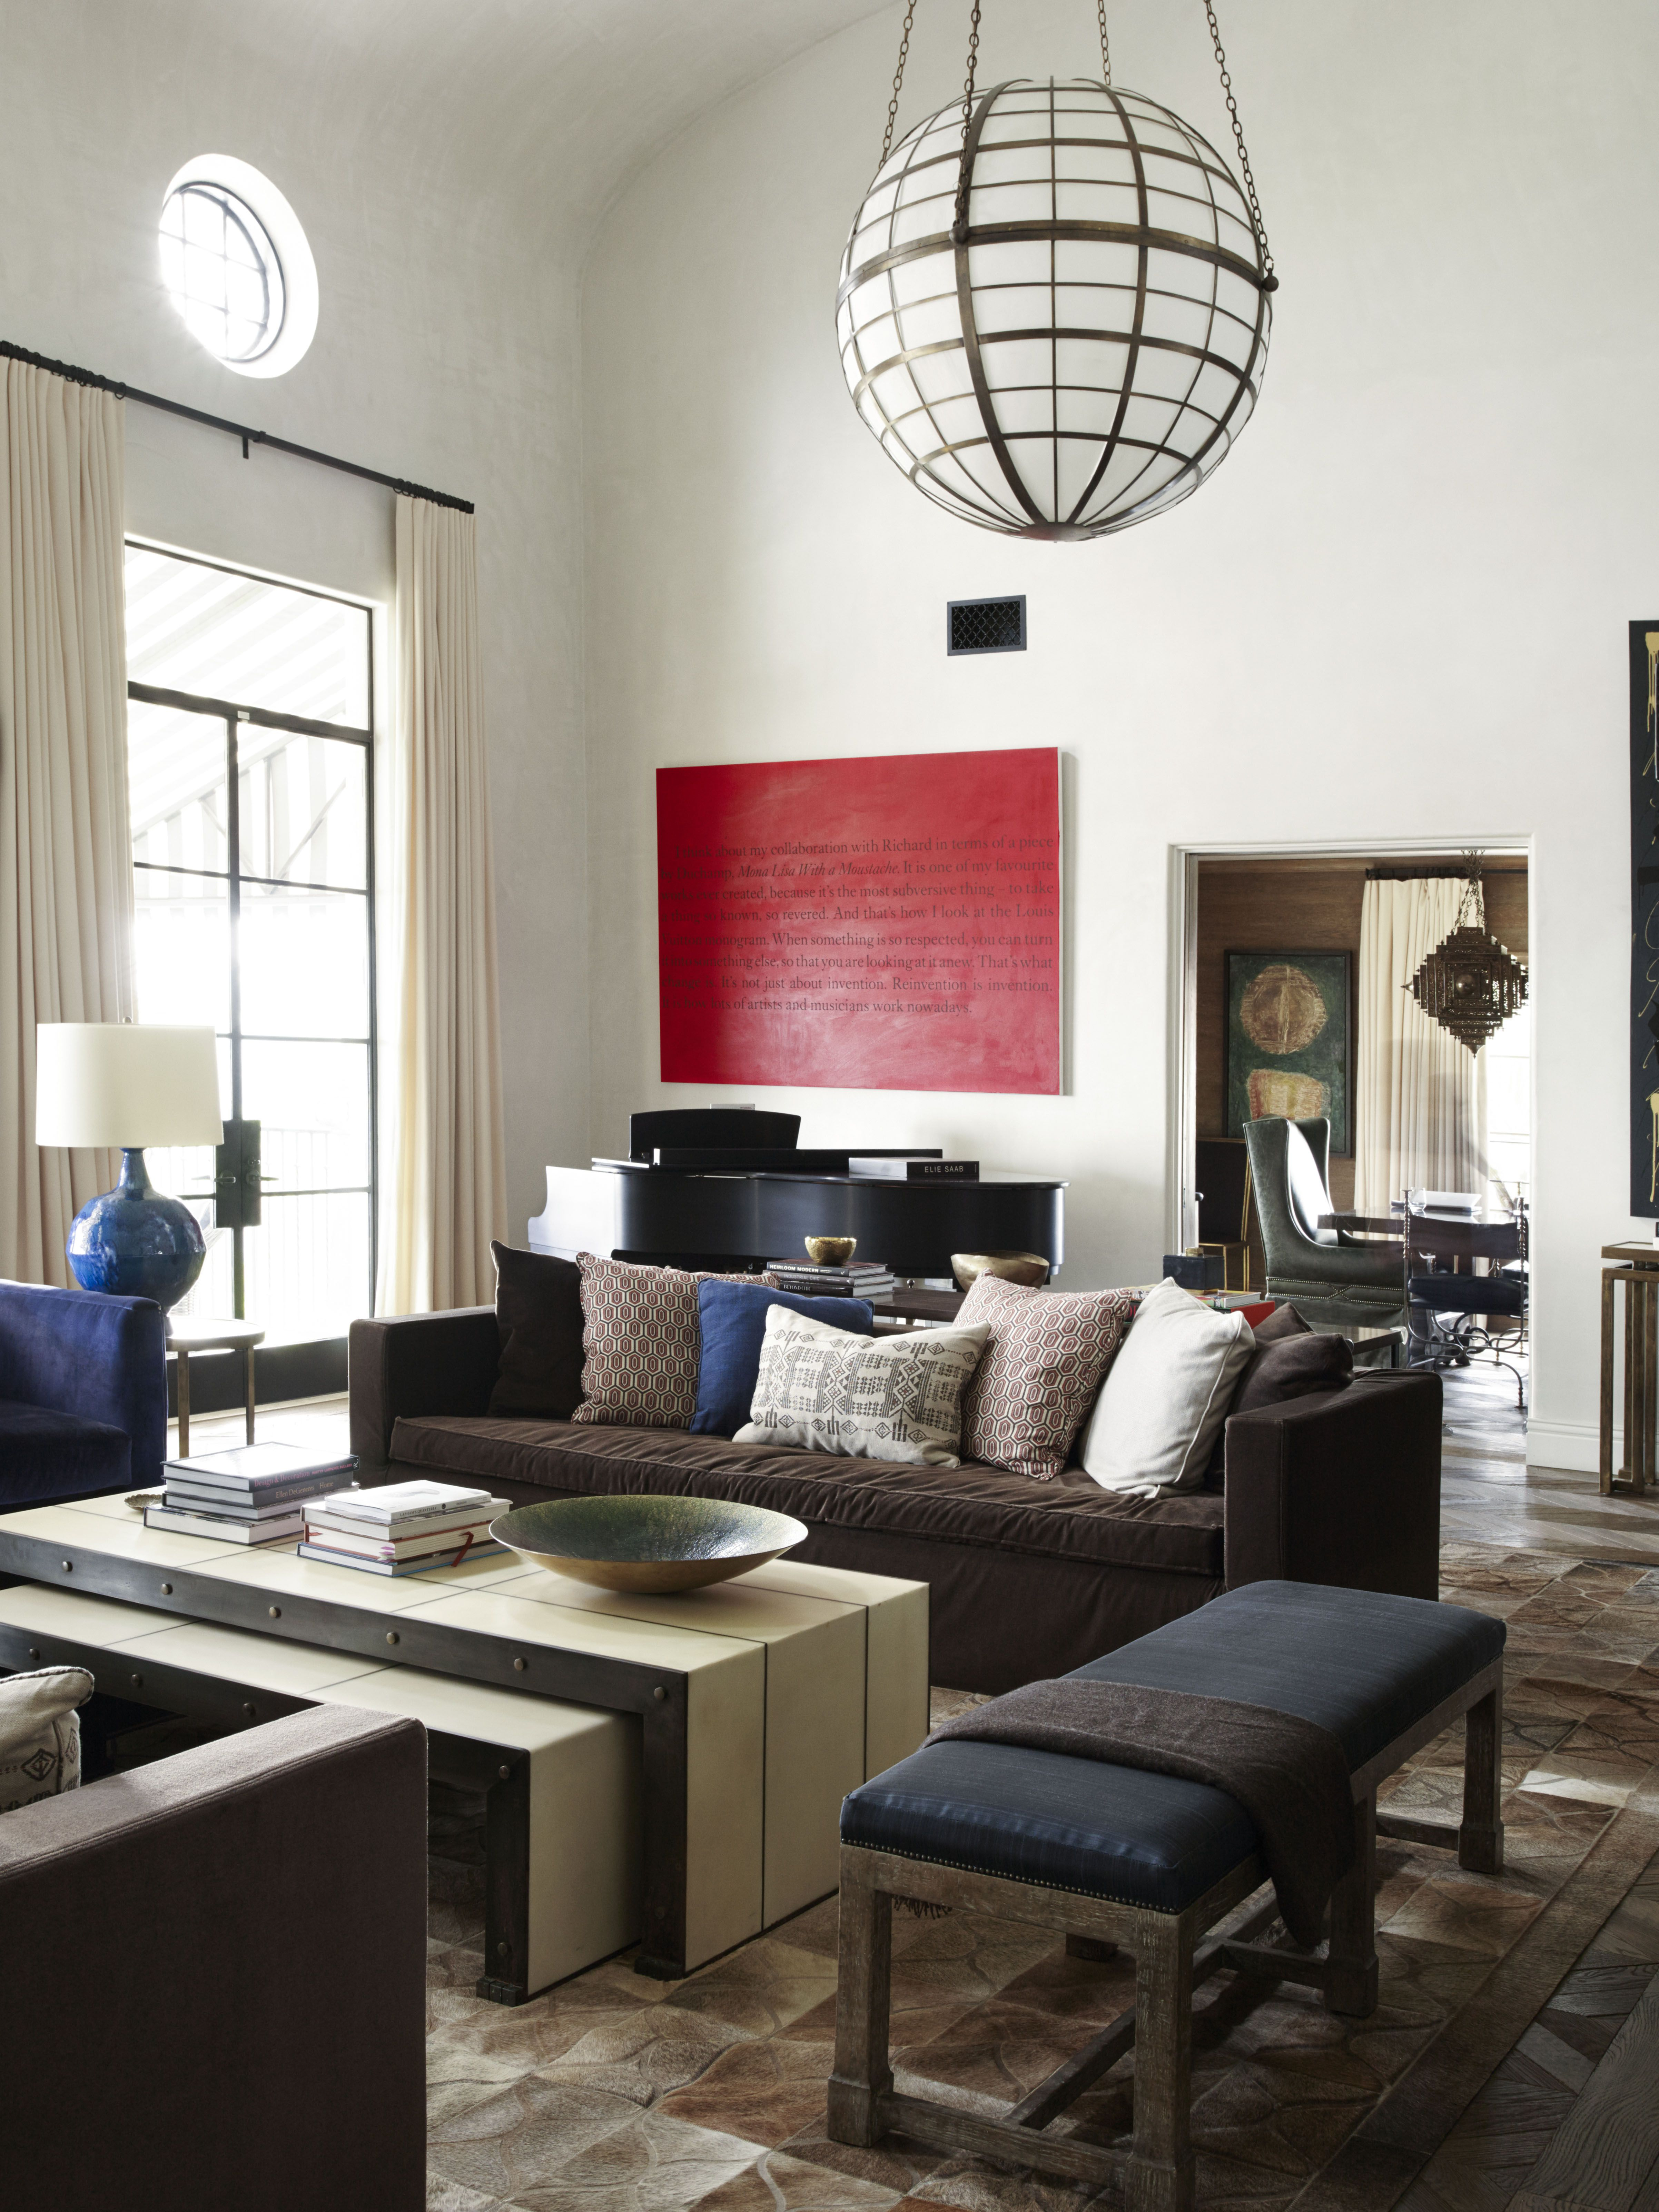 51 Best Living Room Ideas Stylish Living Room Decorating Designs throughout 13 Genius Ways How to Build Living Room Accessories Set